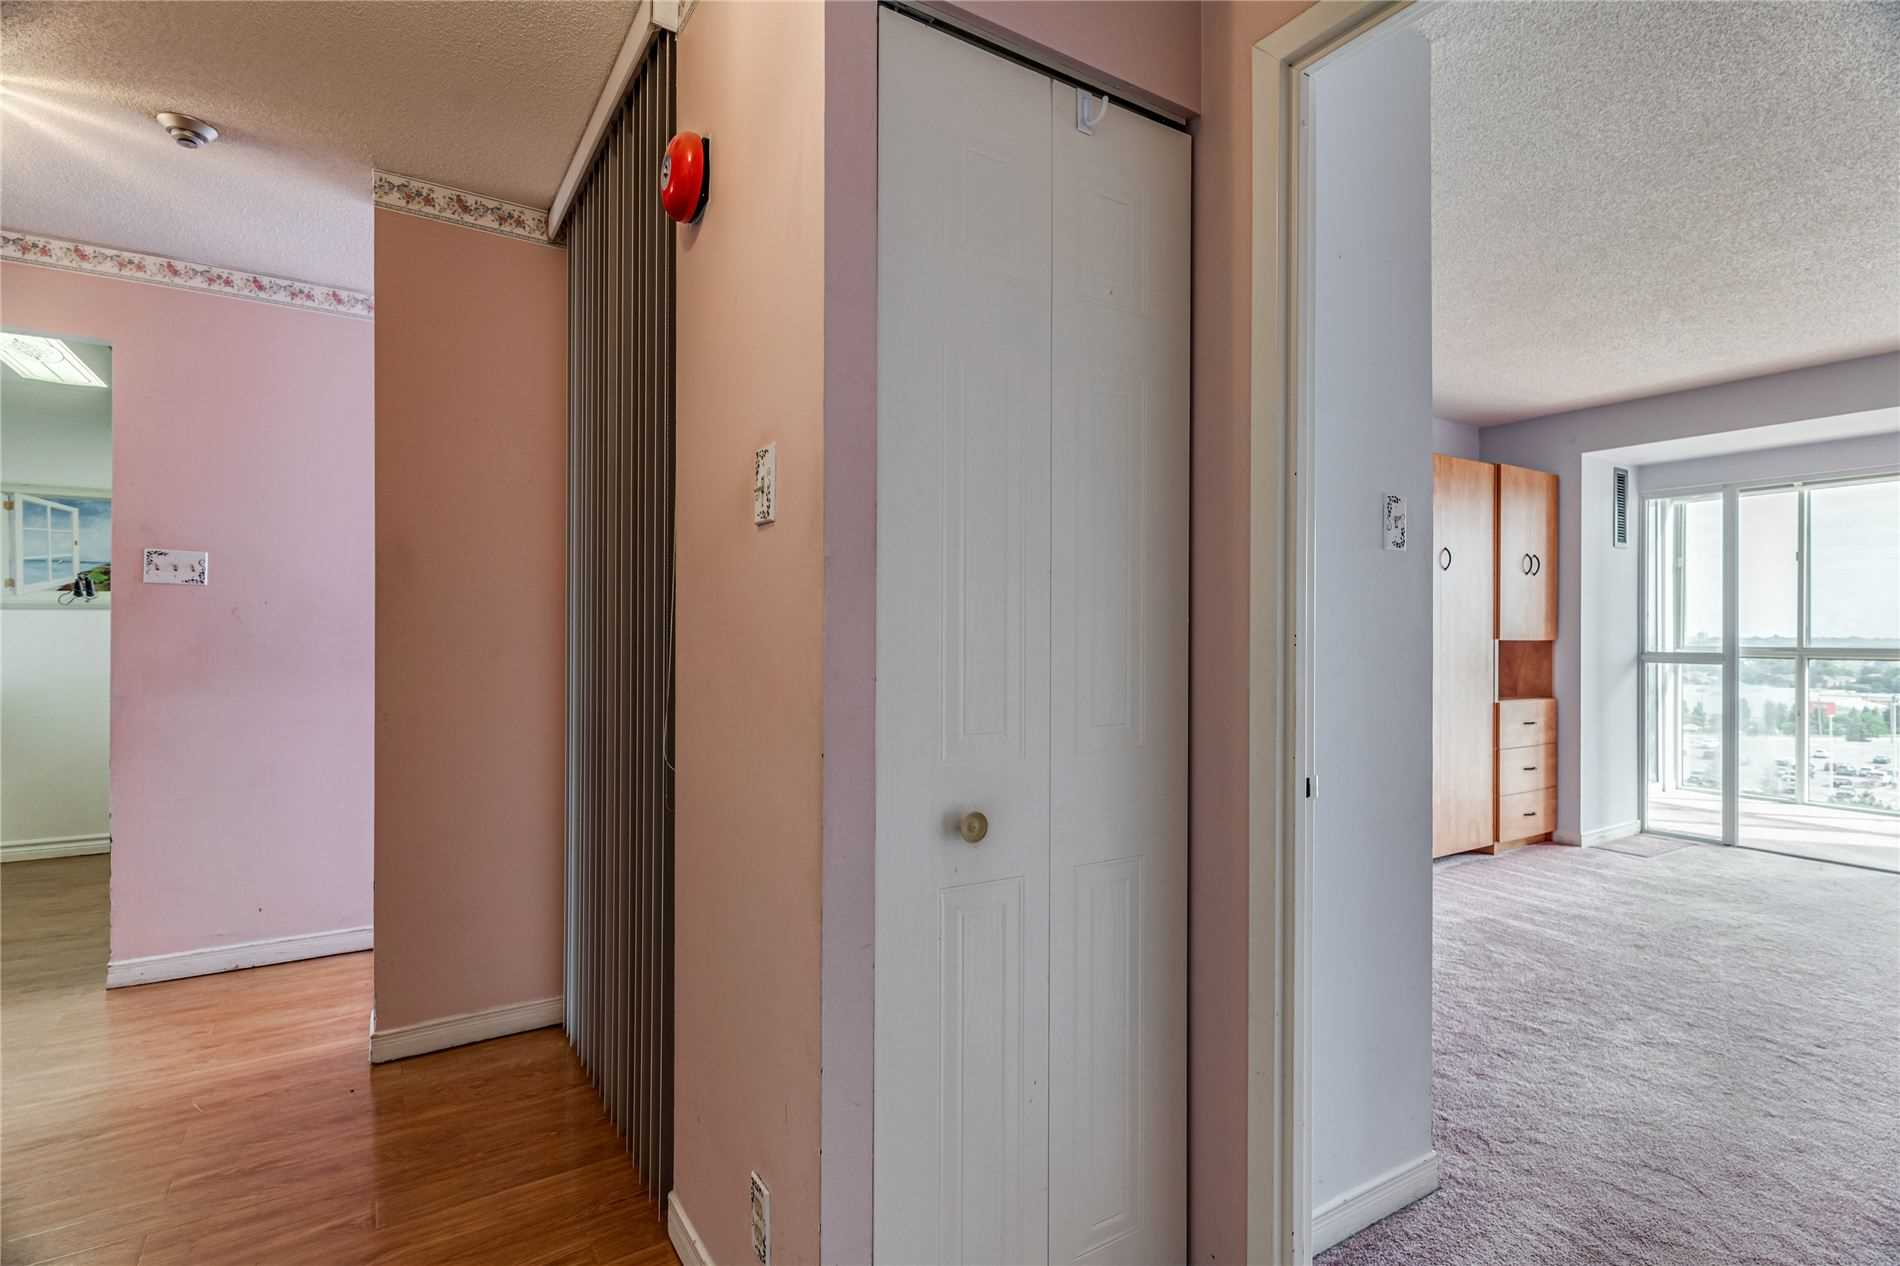 Image 16 of 40 showing inside of 2 Bedroom Condo Apt Apartment for Sale at 1665 Pickering Pkwy Unit# 812, Pickering L1V6L4